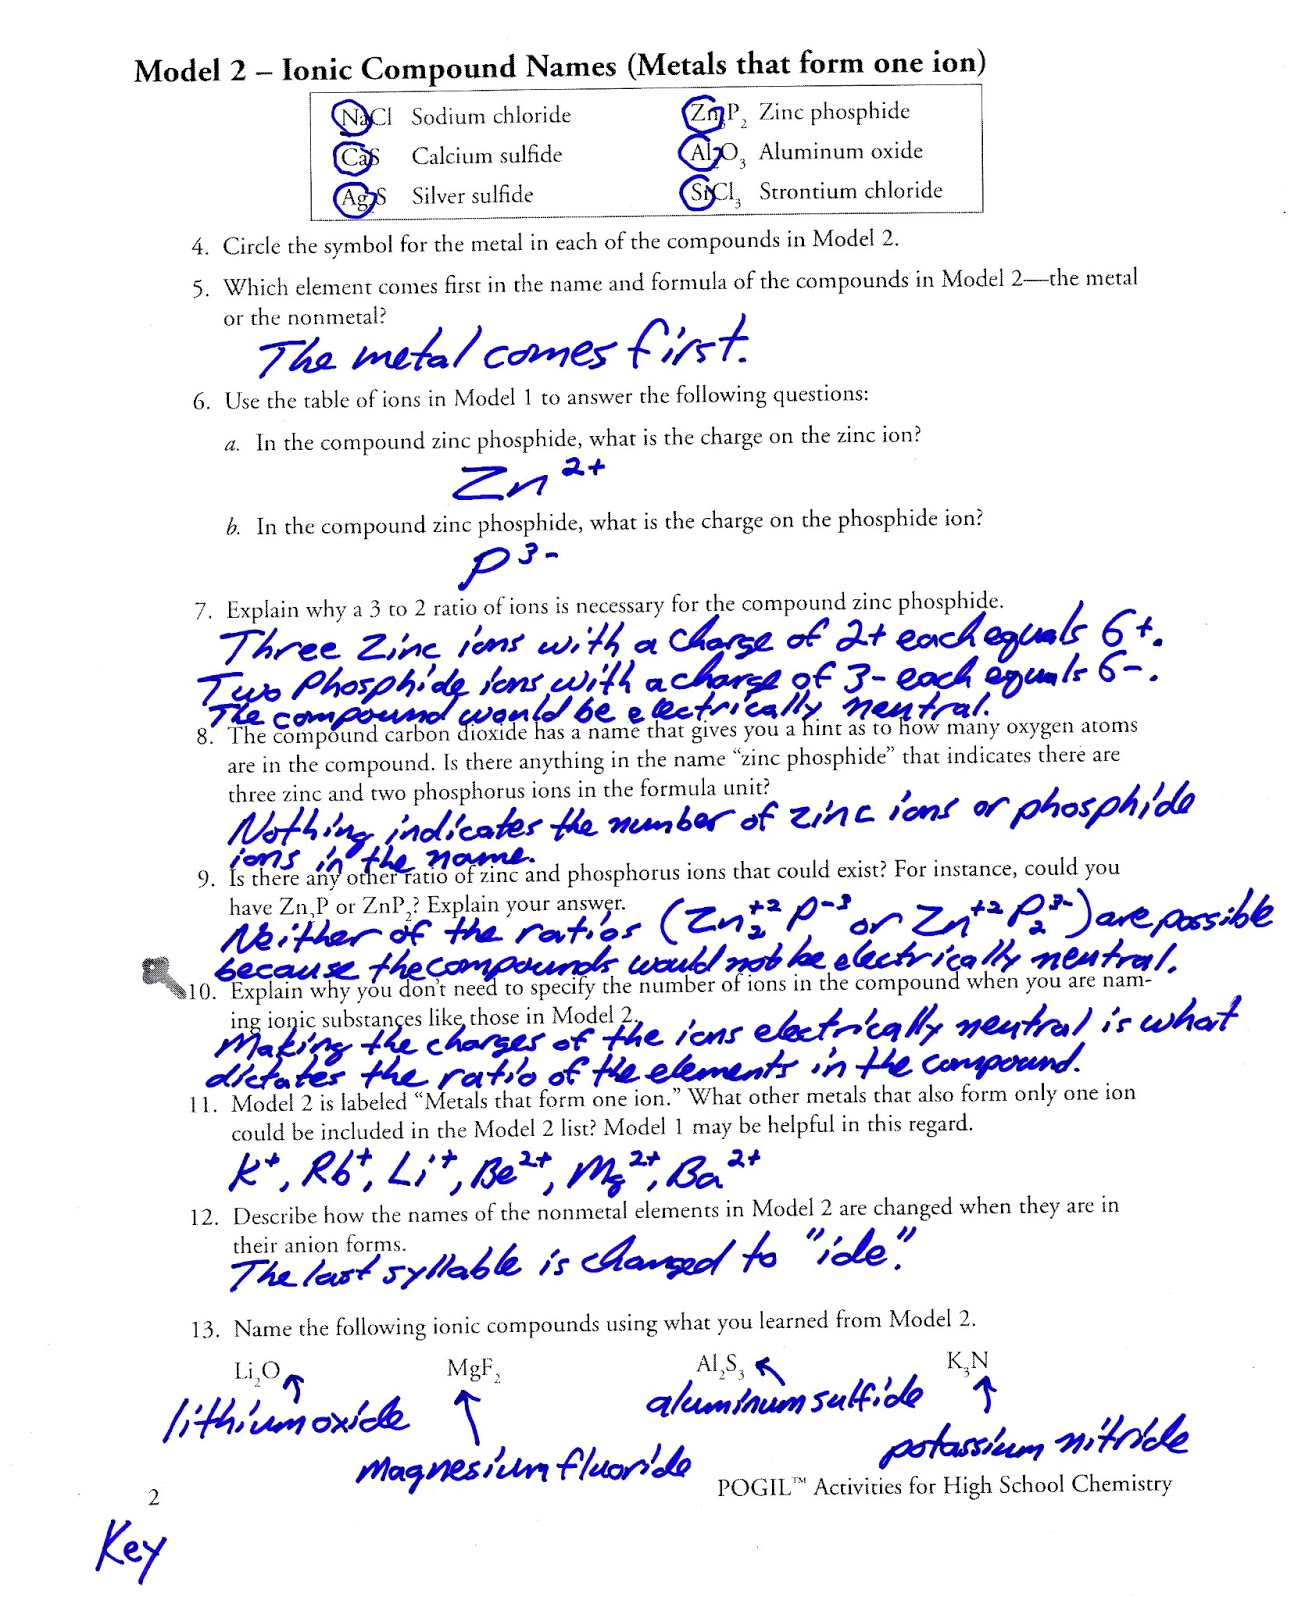 Ionic Compounds Worksheet Answer Key - Delibertad